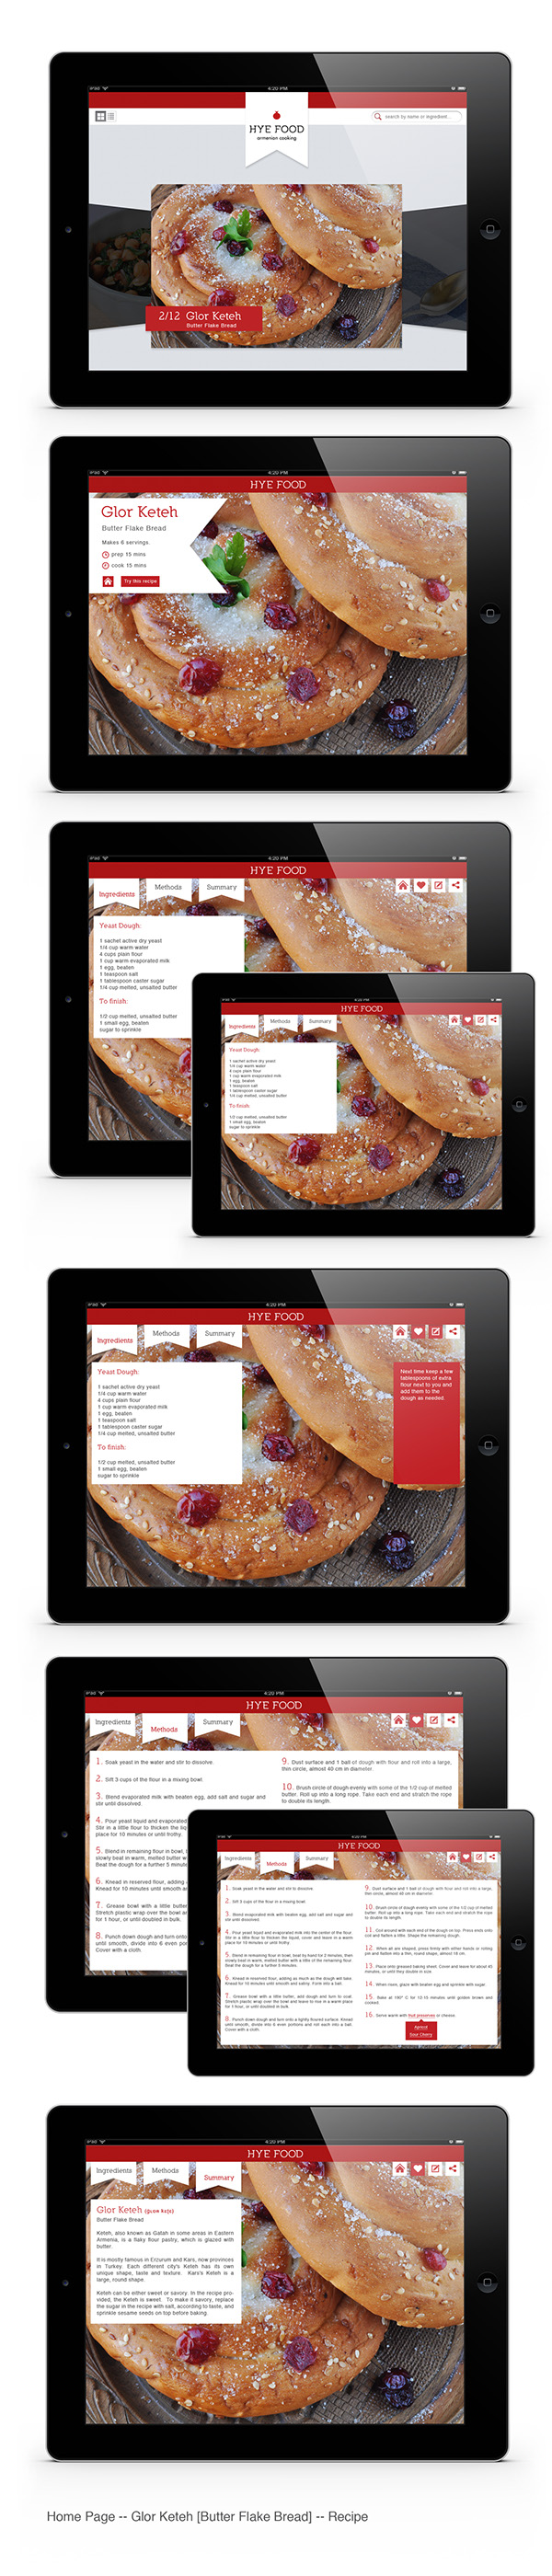 Hye food armenian cooking ipad app on behance for Armenian cuisine cookbook